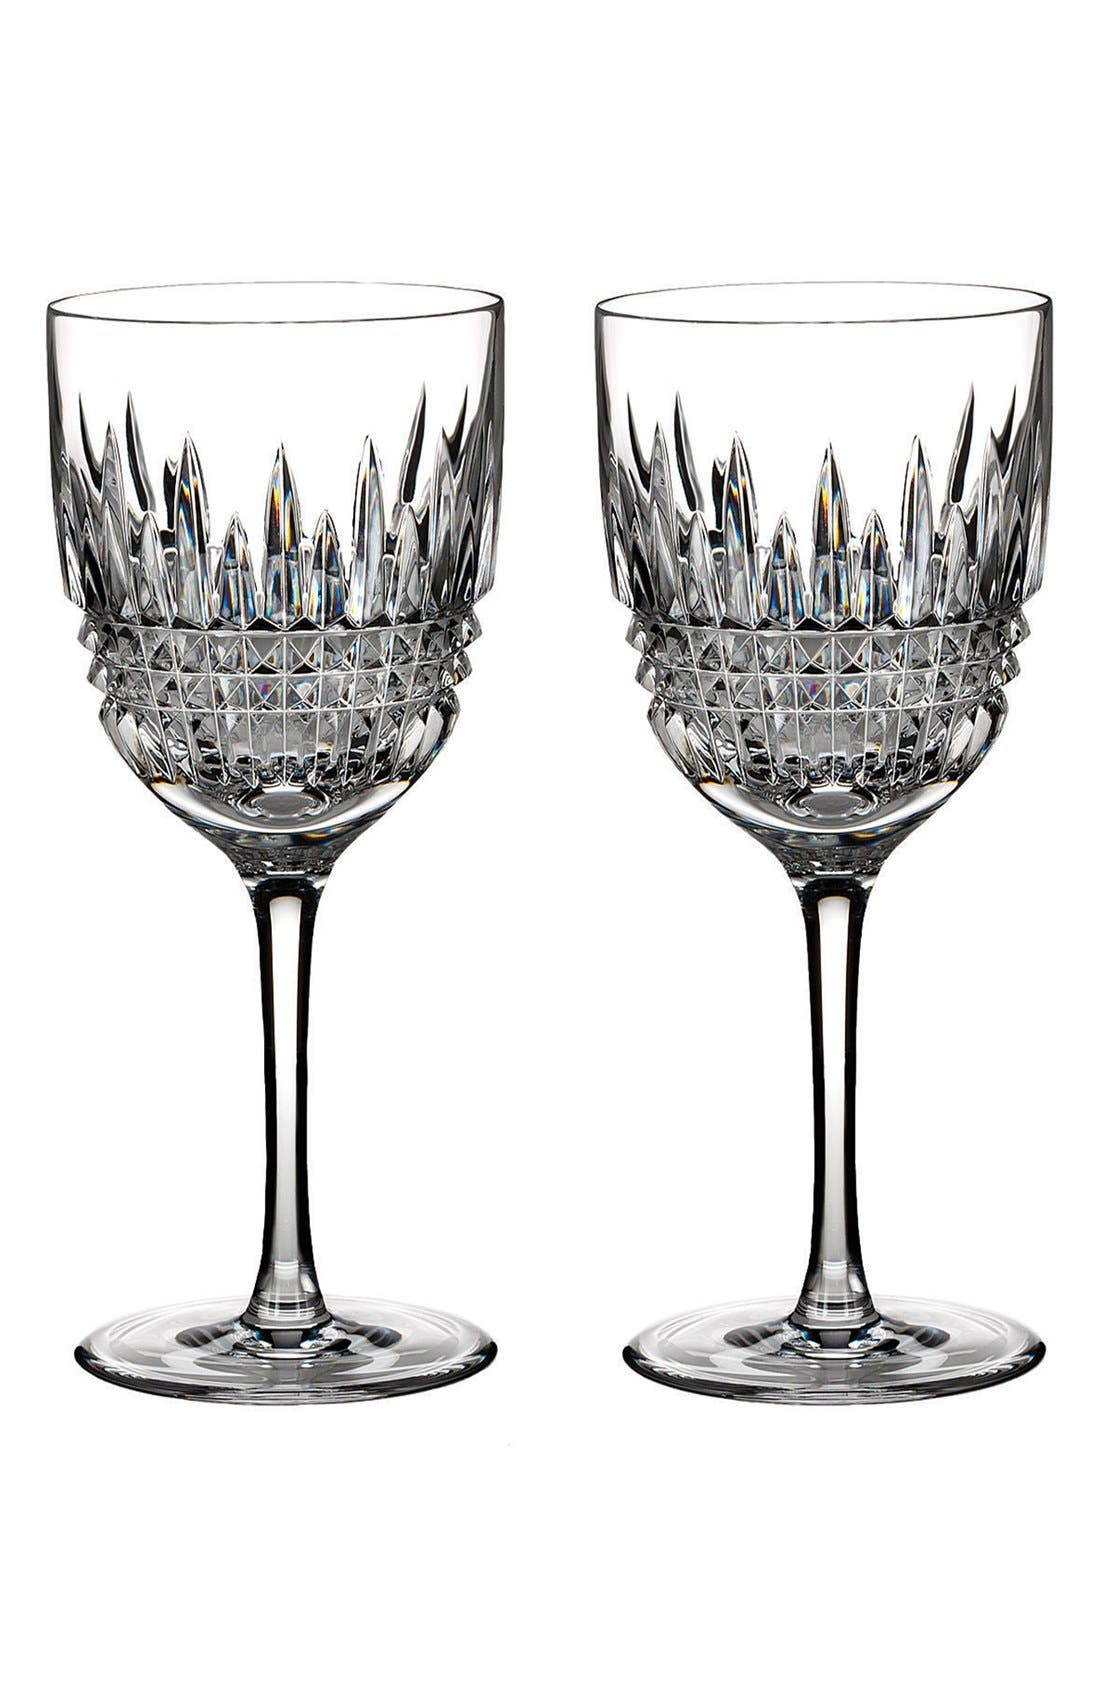 Main Image - Waterford 'Lismore Diamond' Lead Crystal Goblets (Set of 2)